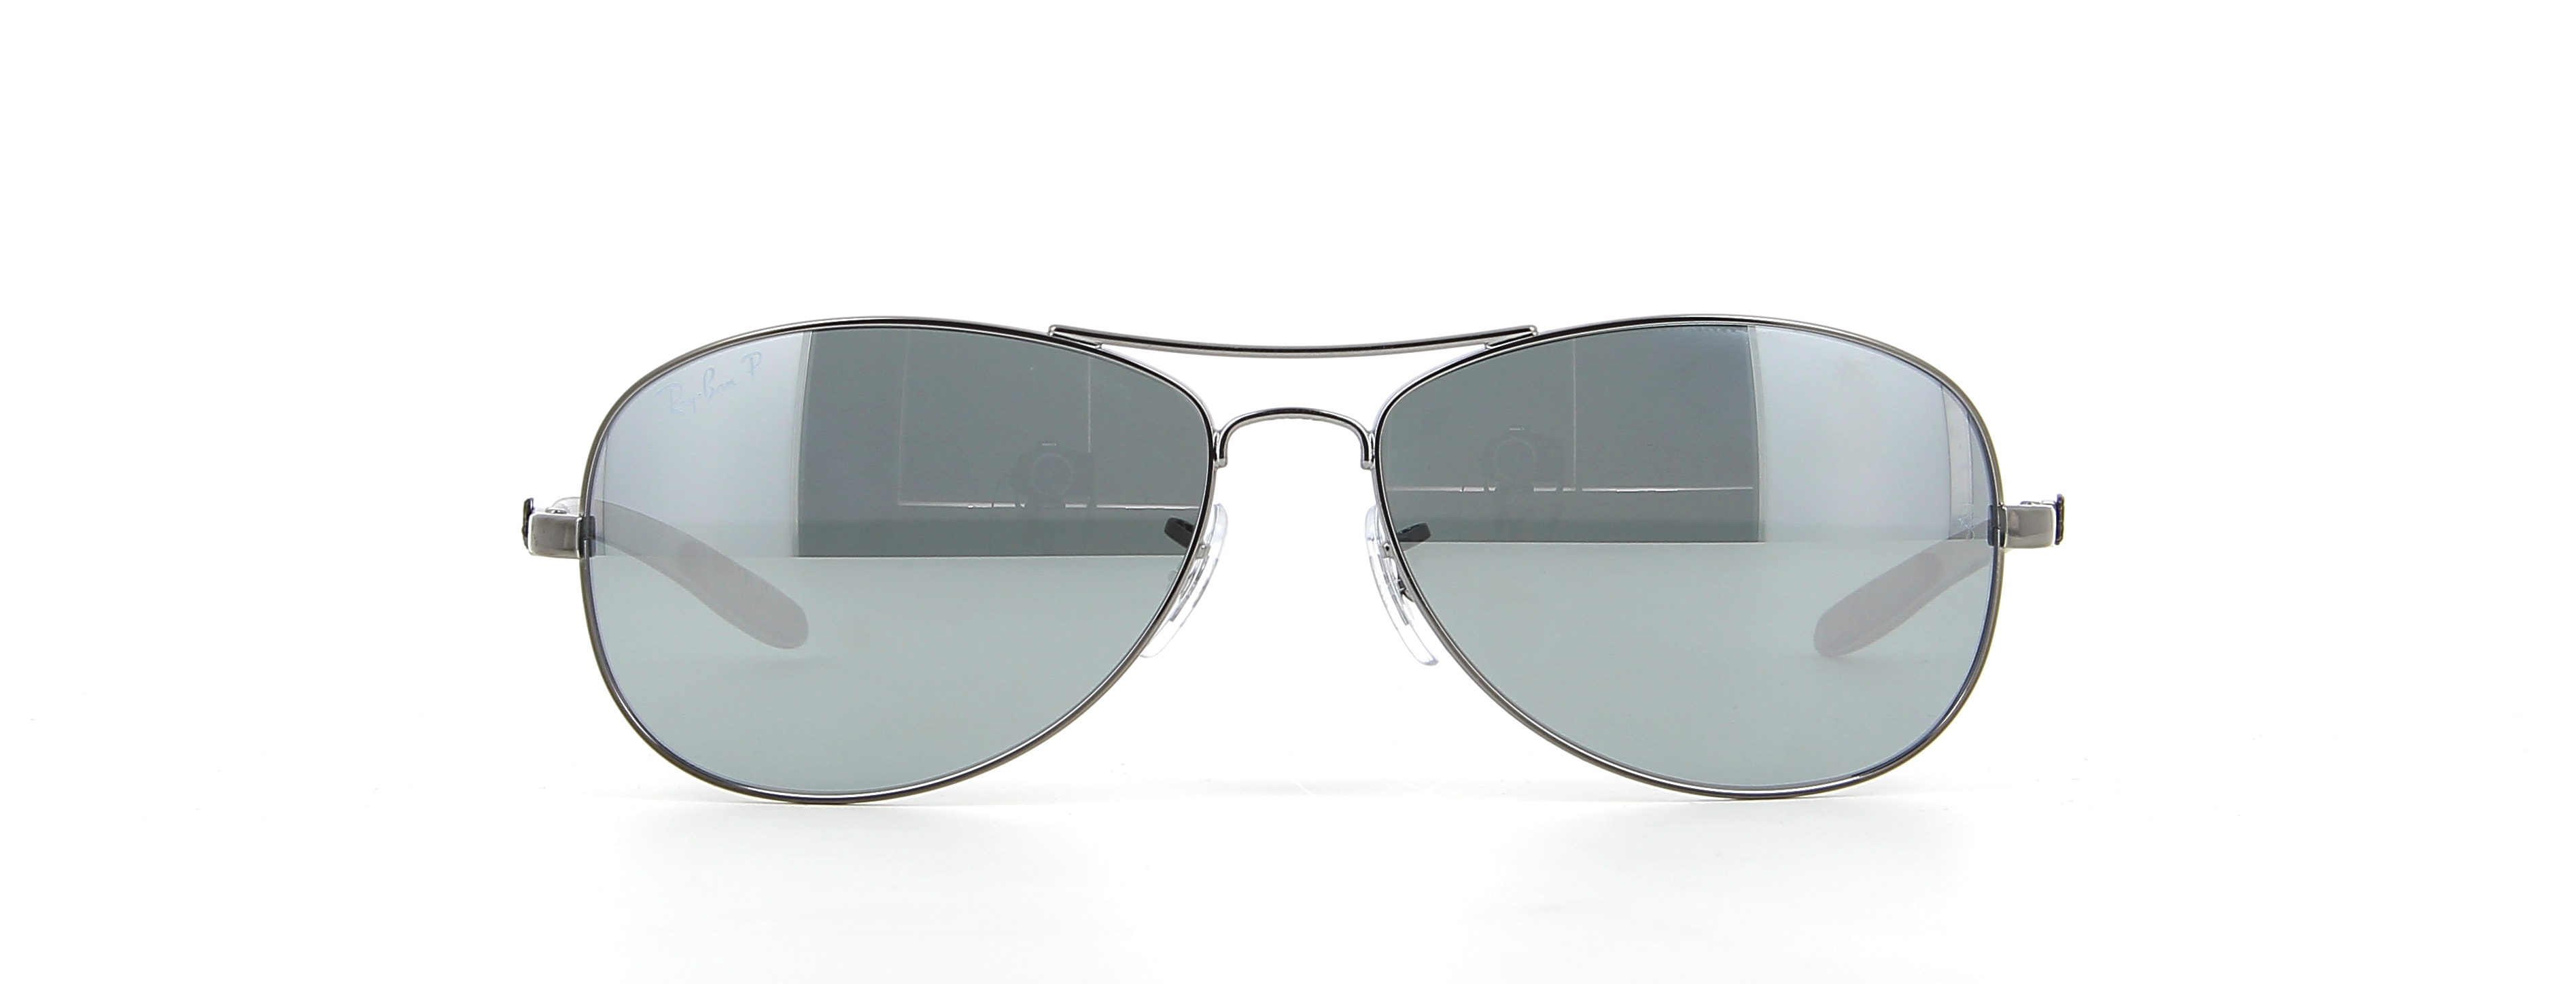 7bc27d394d Ray Ban 8301 Polarized Replacement Lenses « Heritage Malta